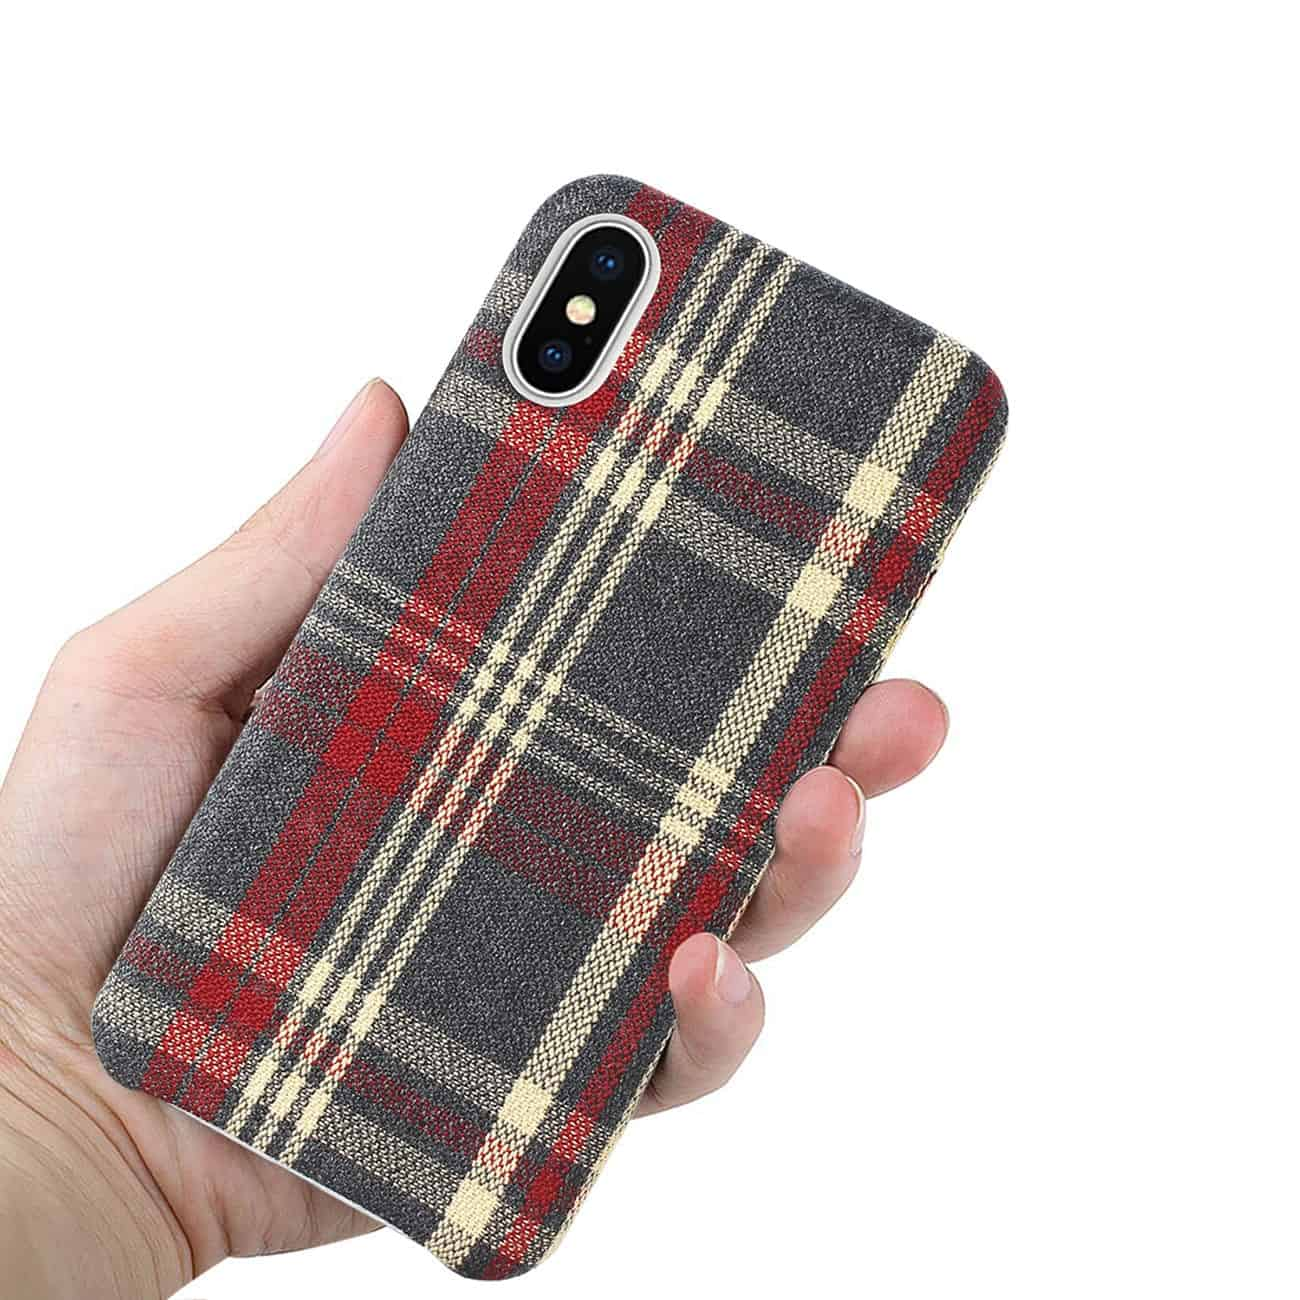 iPhone X Checked Fabric In Red